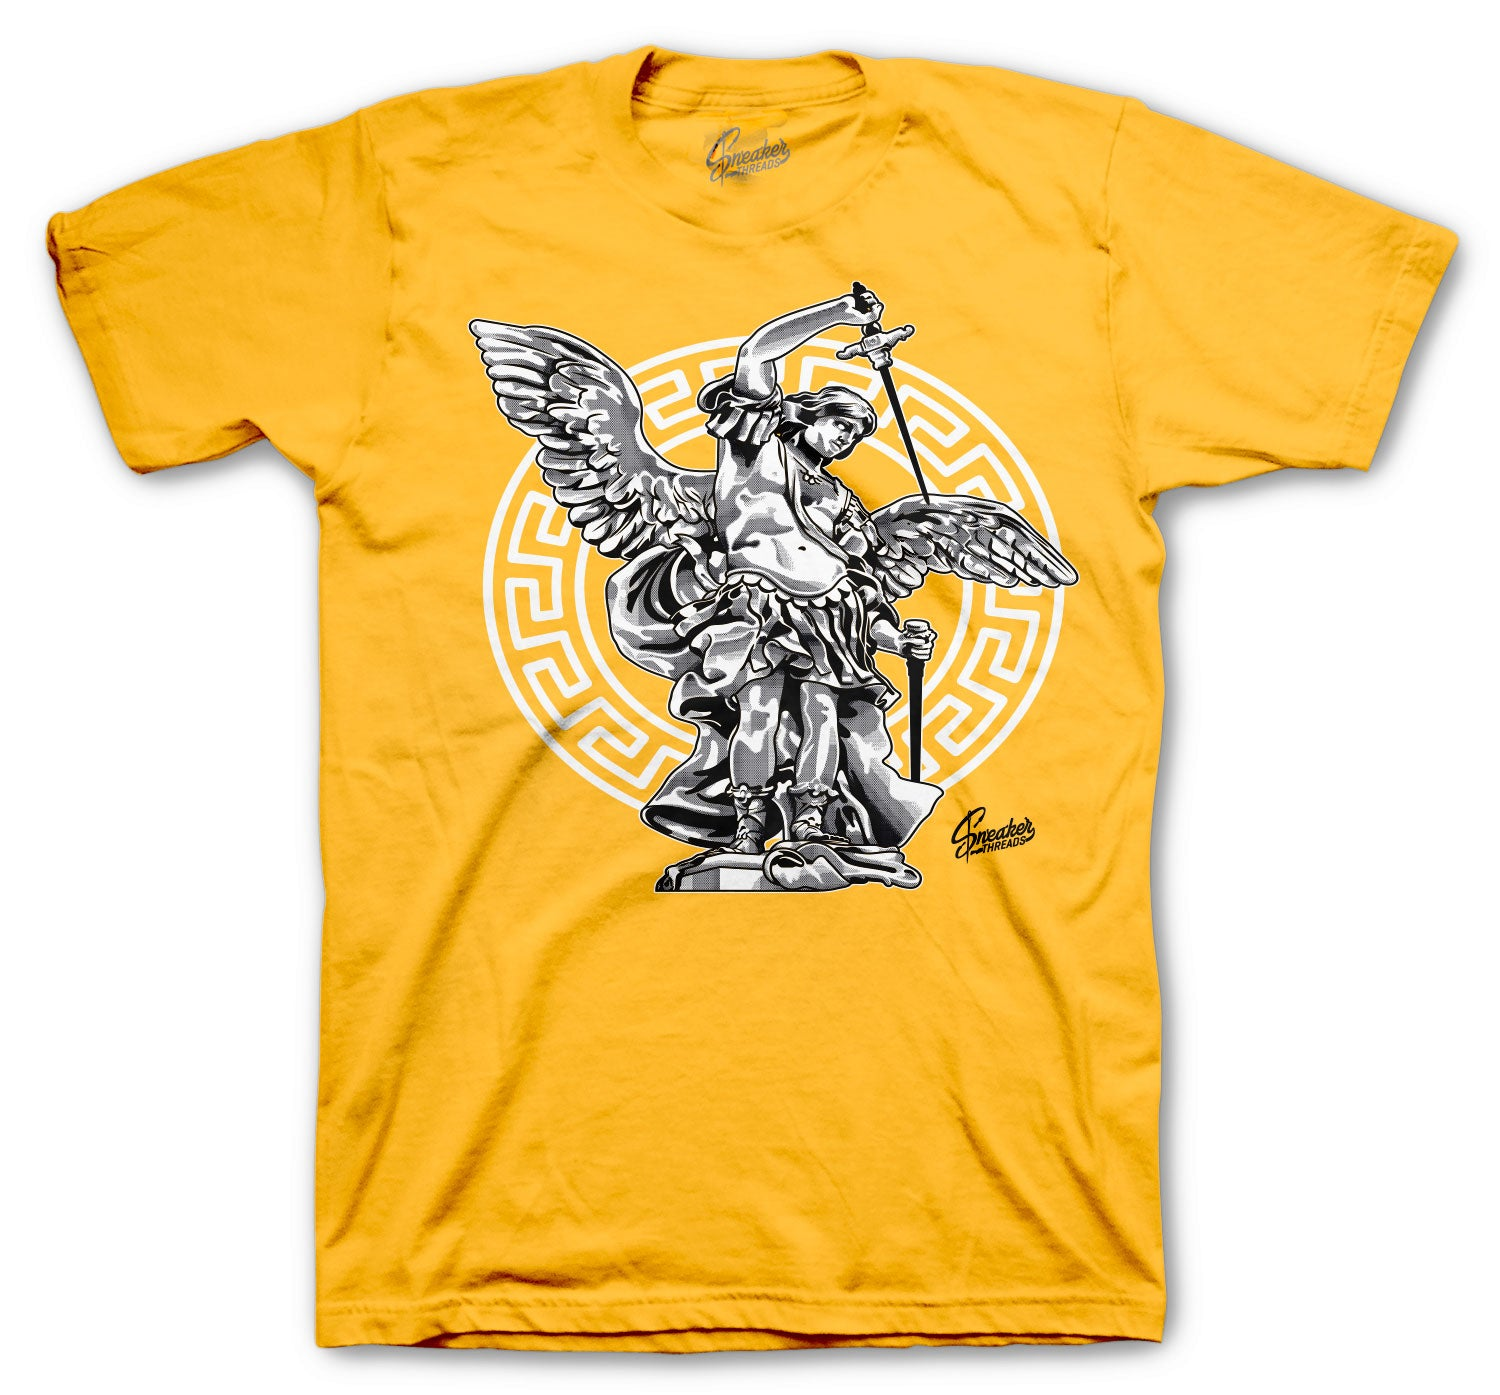 Dunk Hi Maize St. Michael Shirt